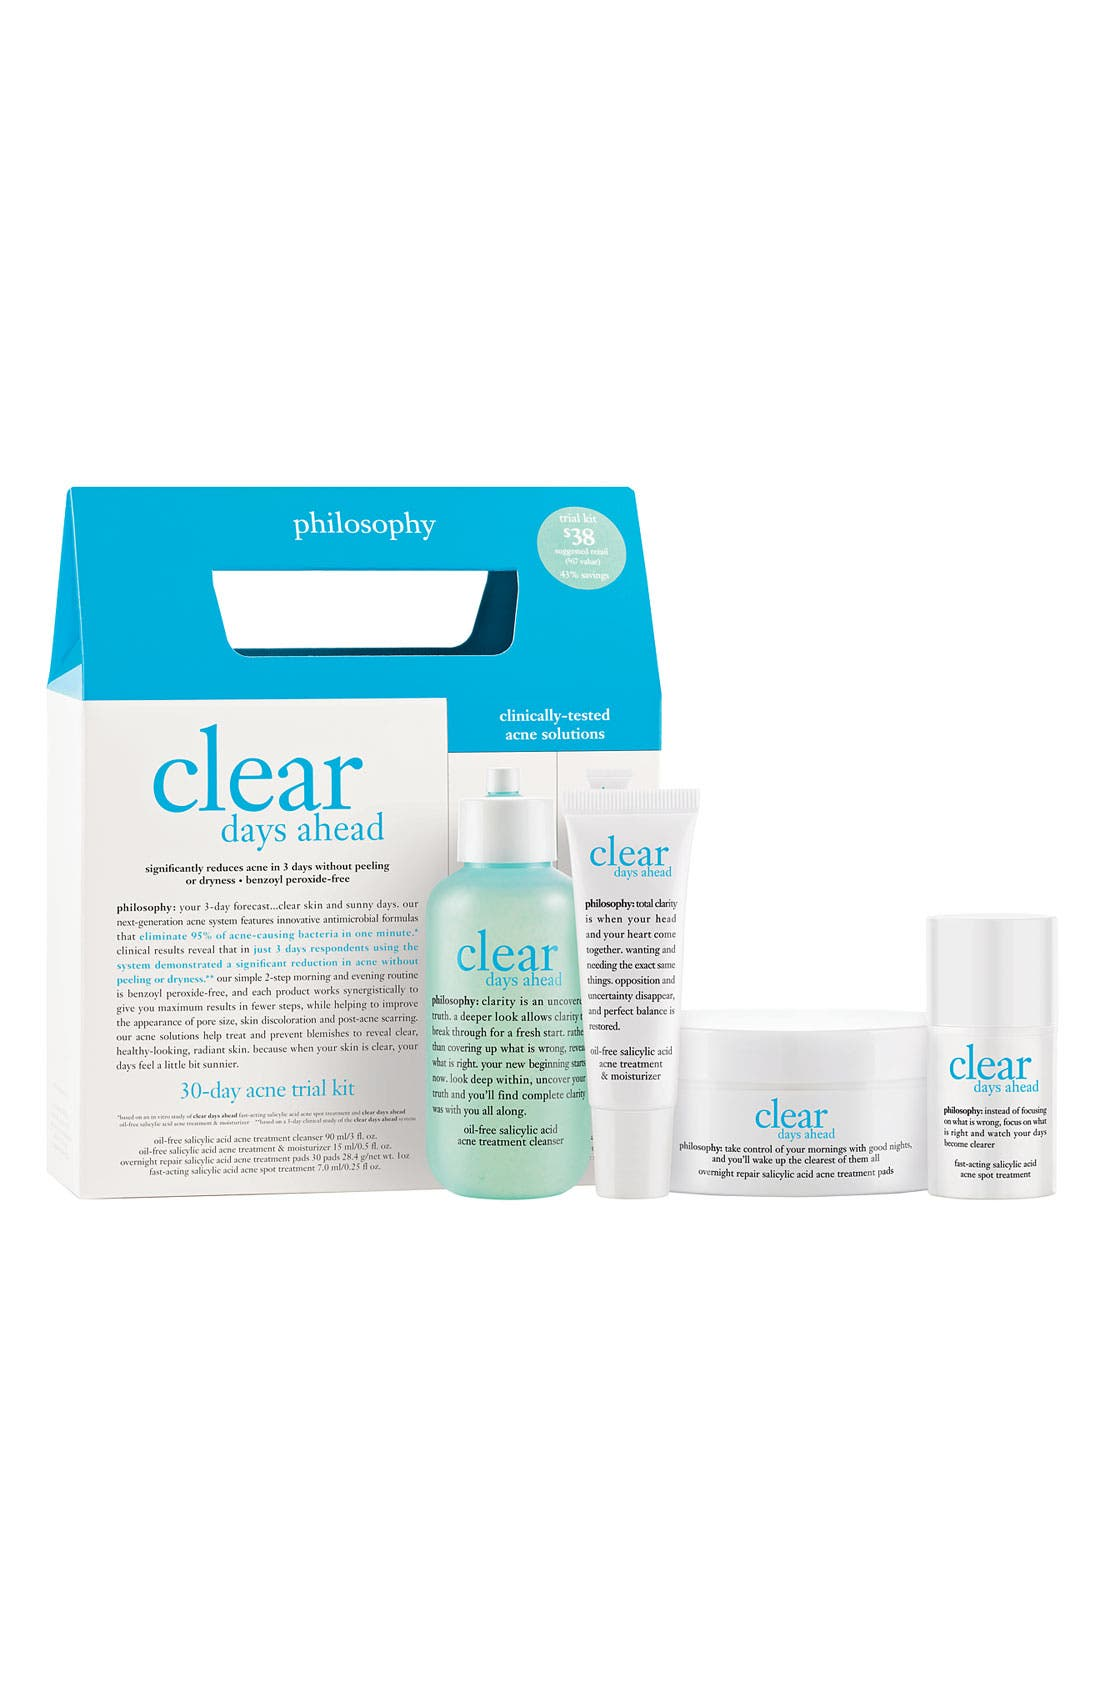 philosophy 'clear days ahead' acne treatment trial kit ($67 value)